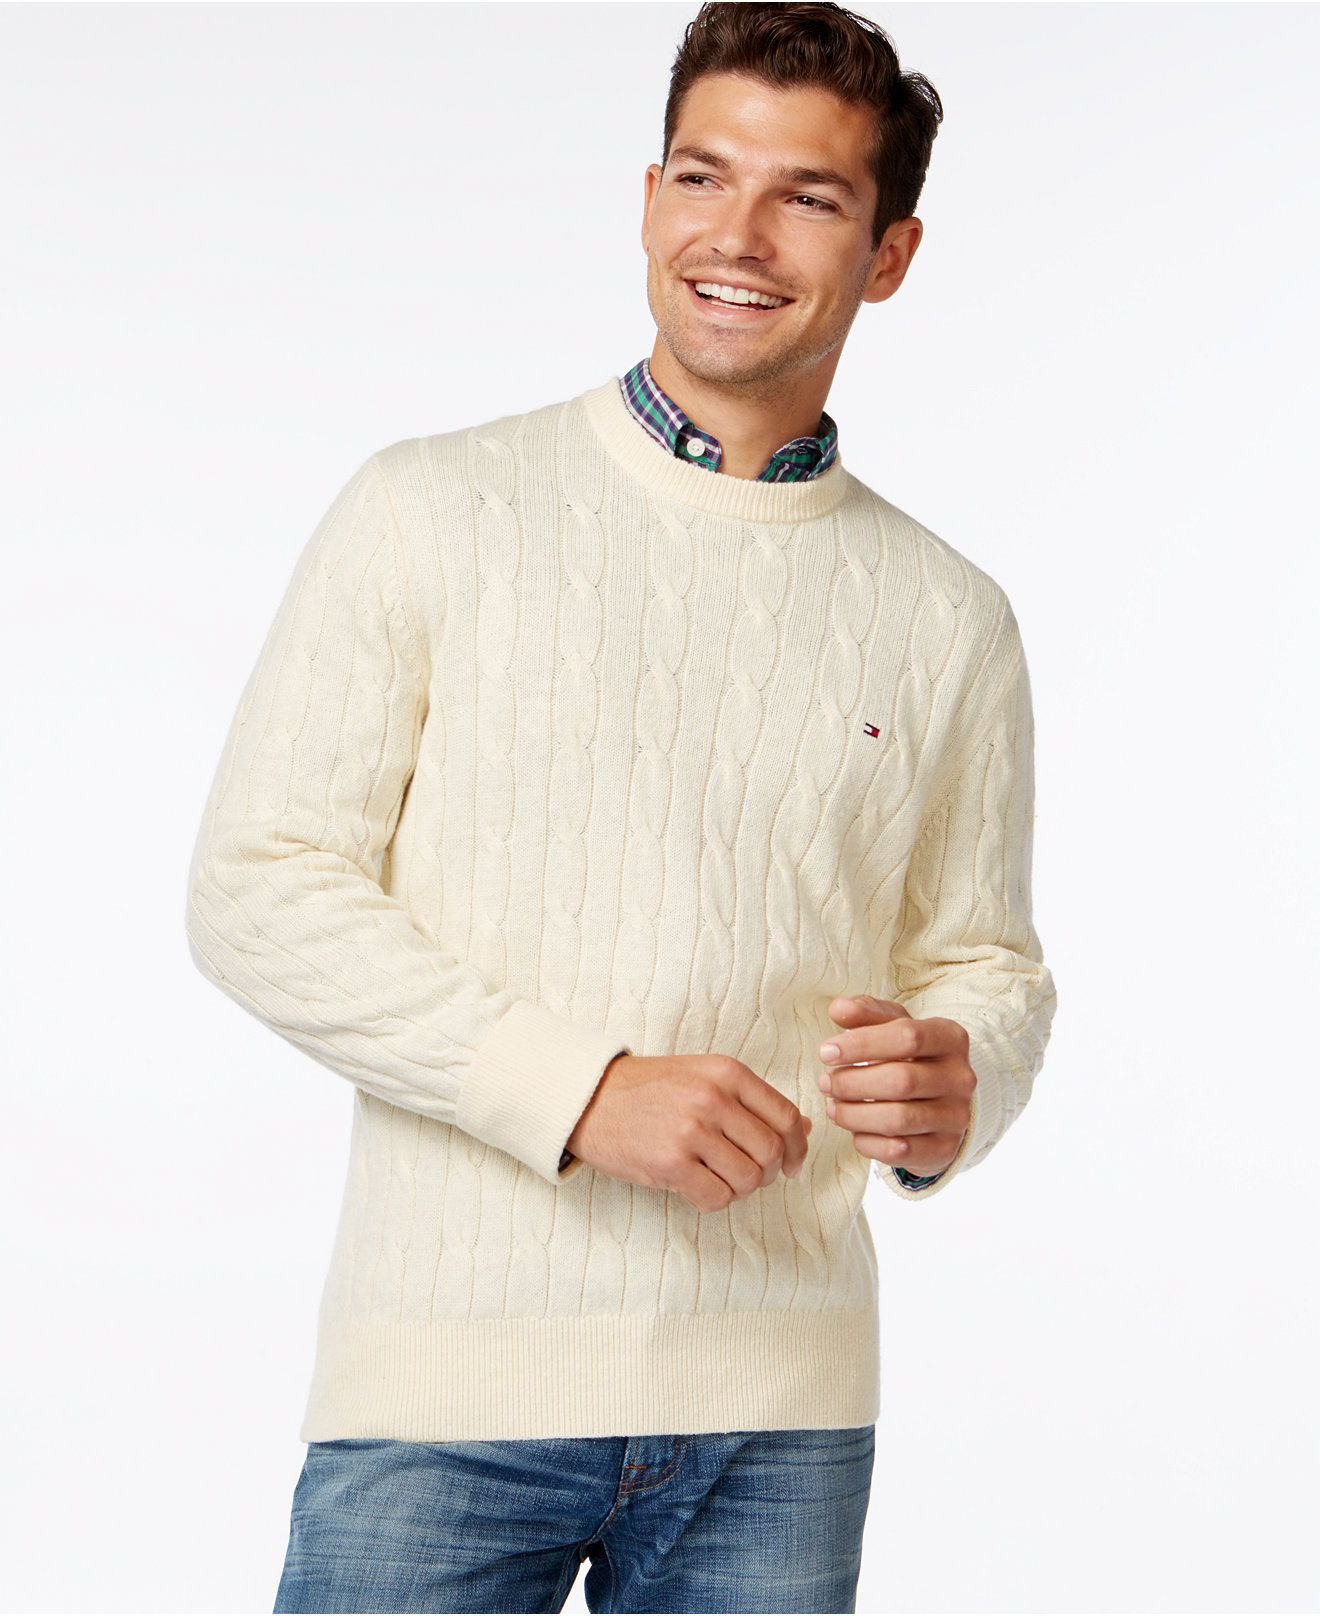 Tommy Hilfiger Intercontinental Cable-Knit Sweater, a Macy's Exclusive Style - Sweaters - Men - Macy's